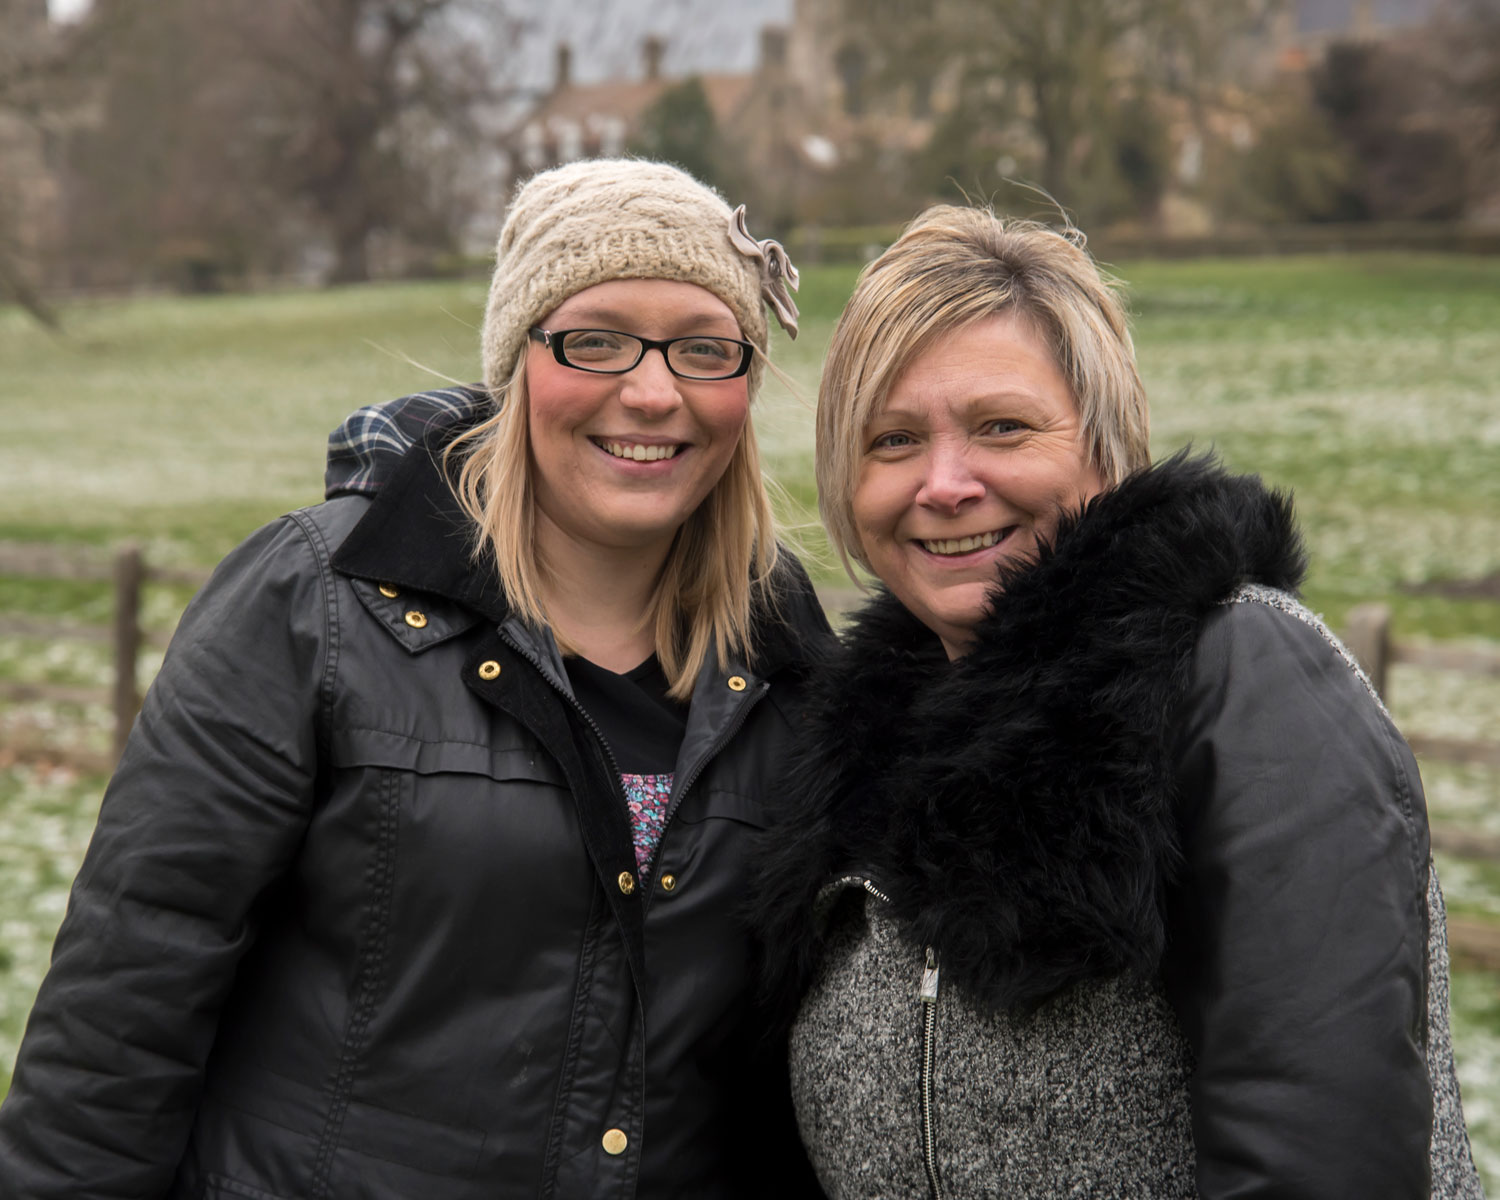 Family_photography_Ely_Cambridgeshire_mothers_day_mini_session_3_generations (2).jpg